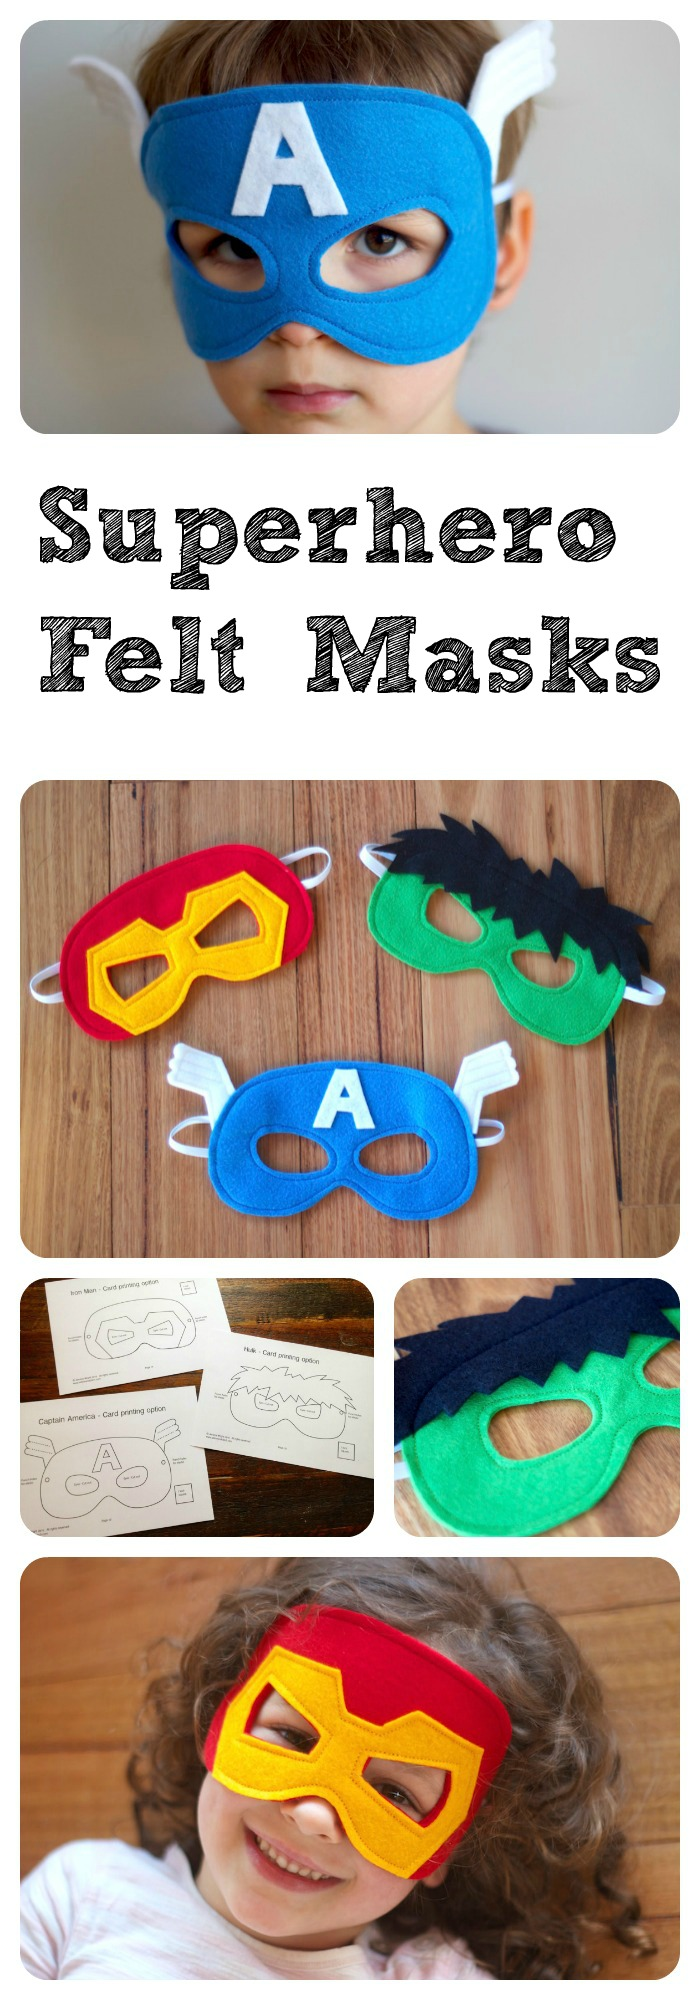 Superhero+Felt+Masks+-+A+PDF+sewing+pattern+-+Captain+America,+Hulk+and+Ironman